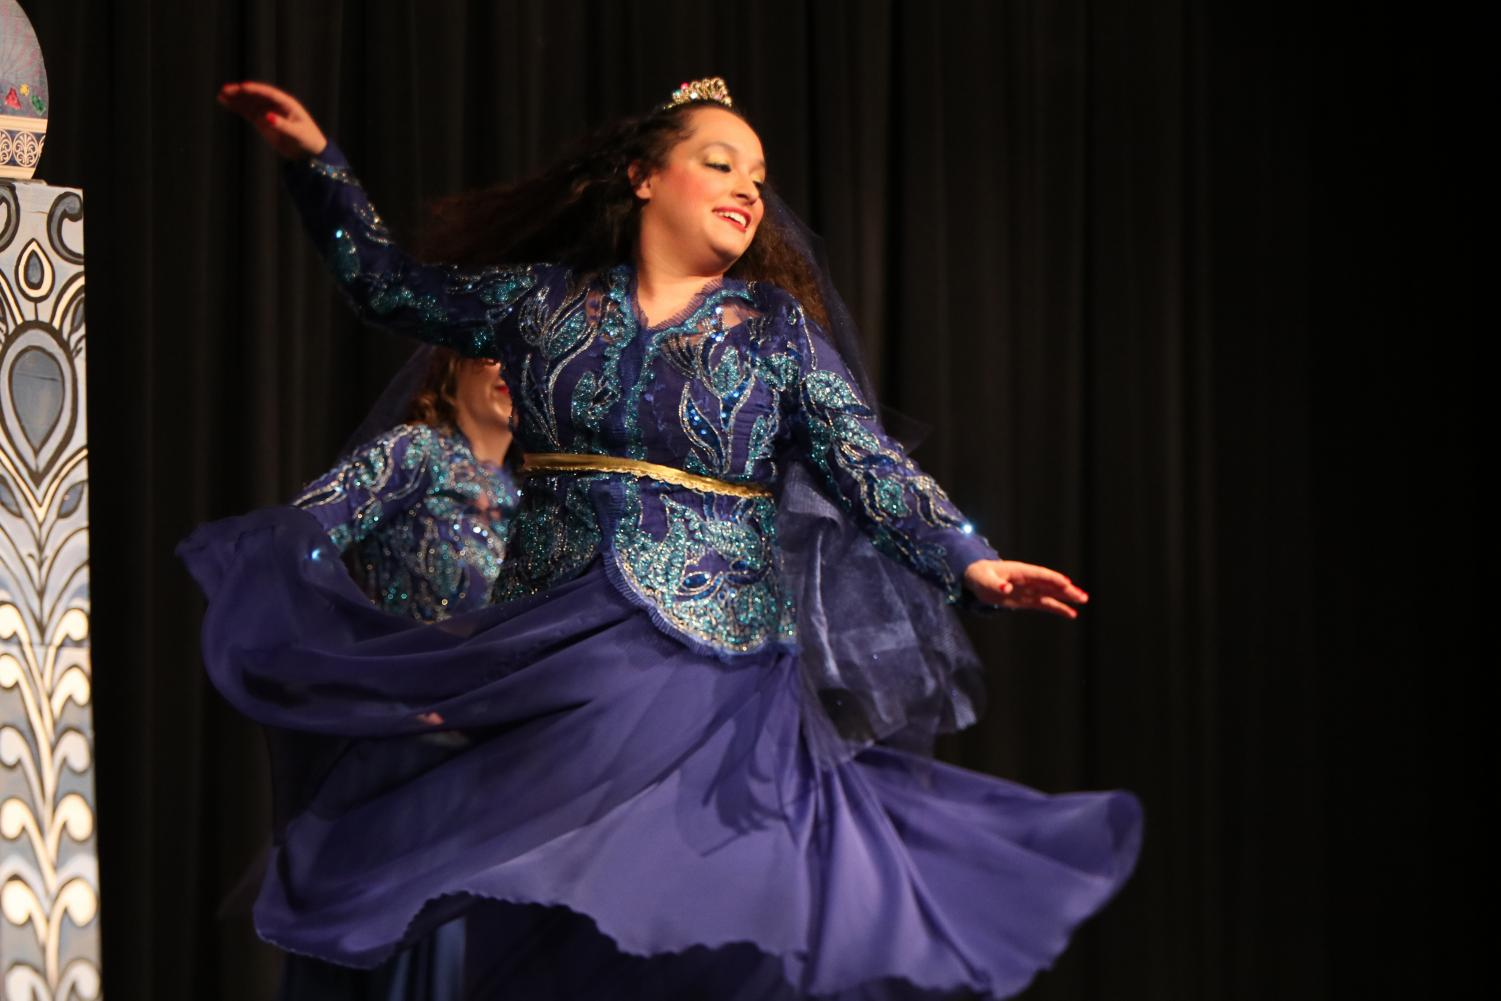 A+performer+from+UT+Austin+spins+in+her+Persian+dance.